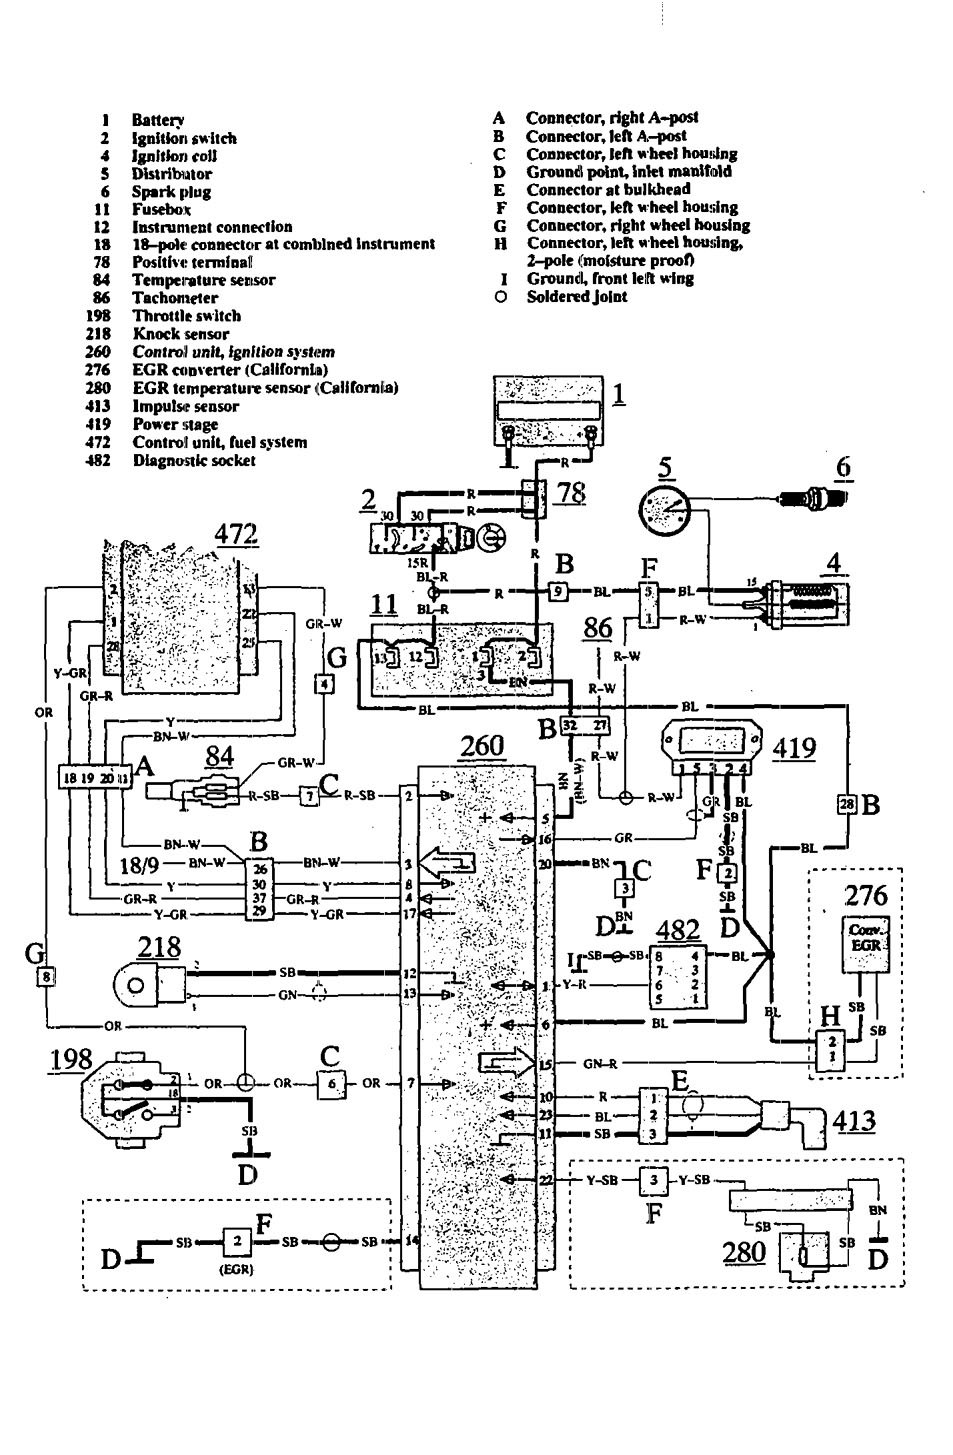 Volvo 940  1991  - Wiring Diagrams - Ignition